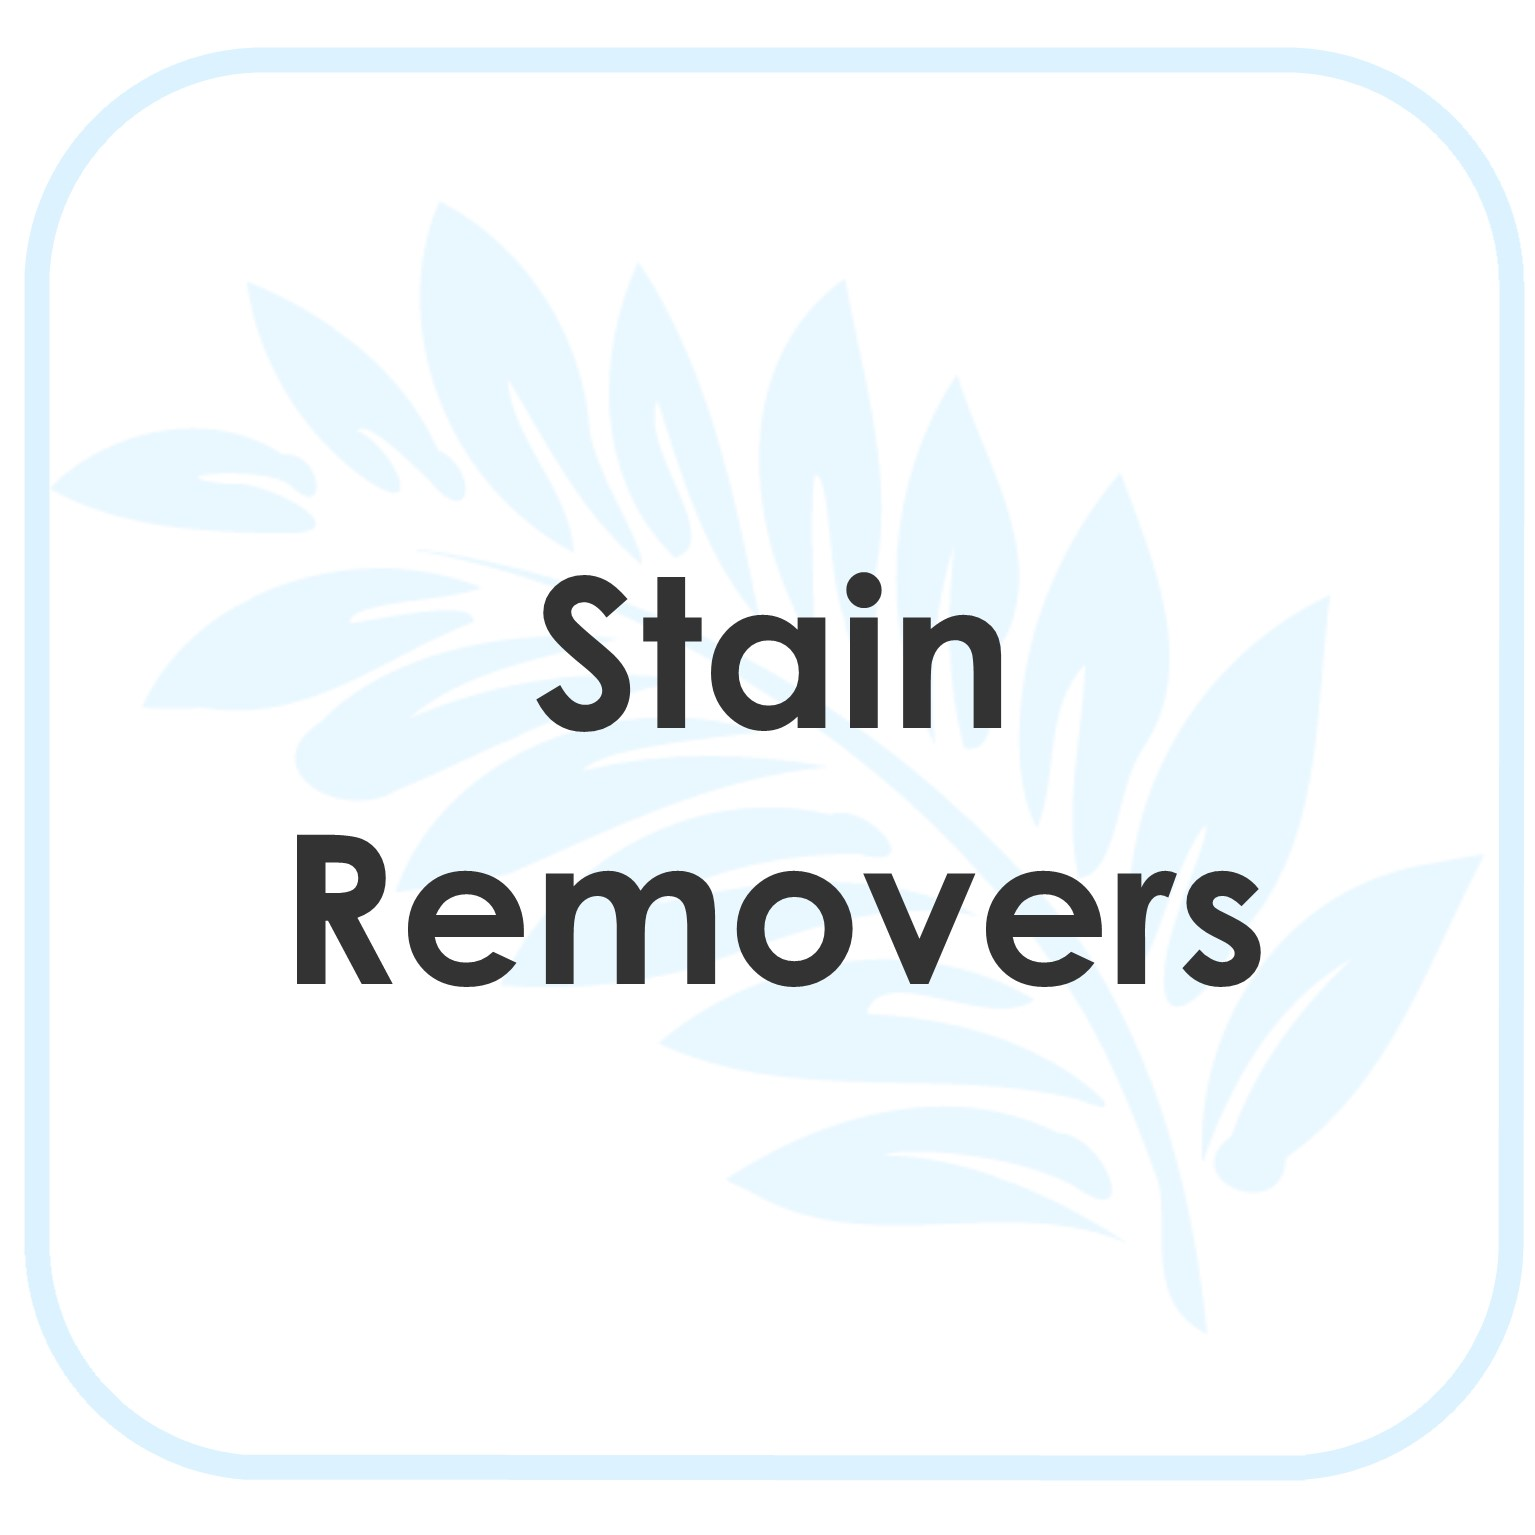 Stain Removers Product Instructions